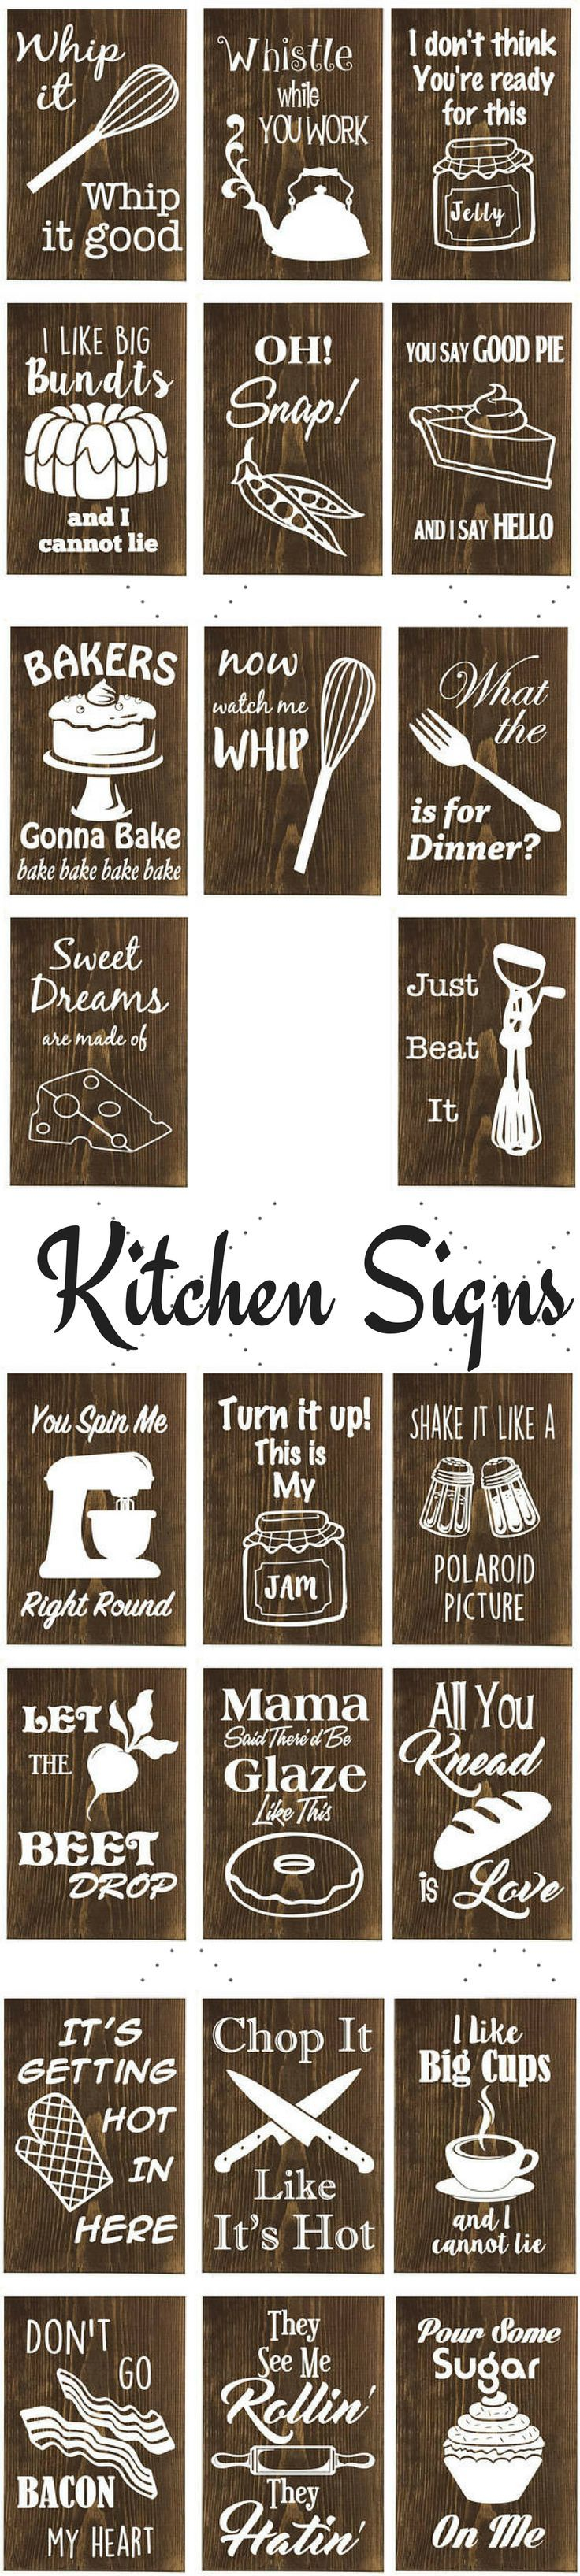 Funny Wooden Kitchen Sign - Wall Decor Kitchen humor Housewarming Kitchen Decor Home Decor Conversation Piece Funny #signs #humor #funny #quotes #kitchendecor #kitchenideas #kitchensigns #kitchen #funnysings #gift #giftideas #affiliate